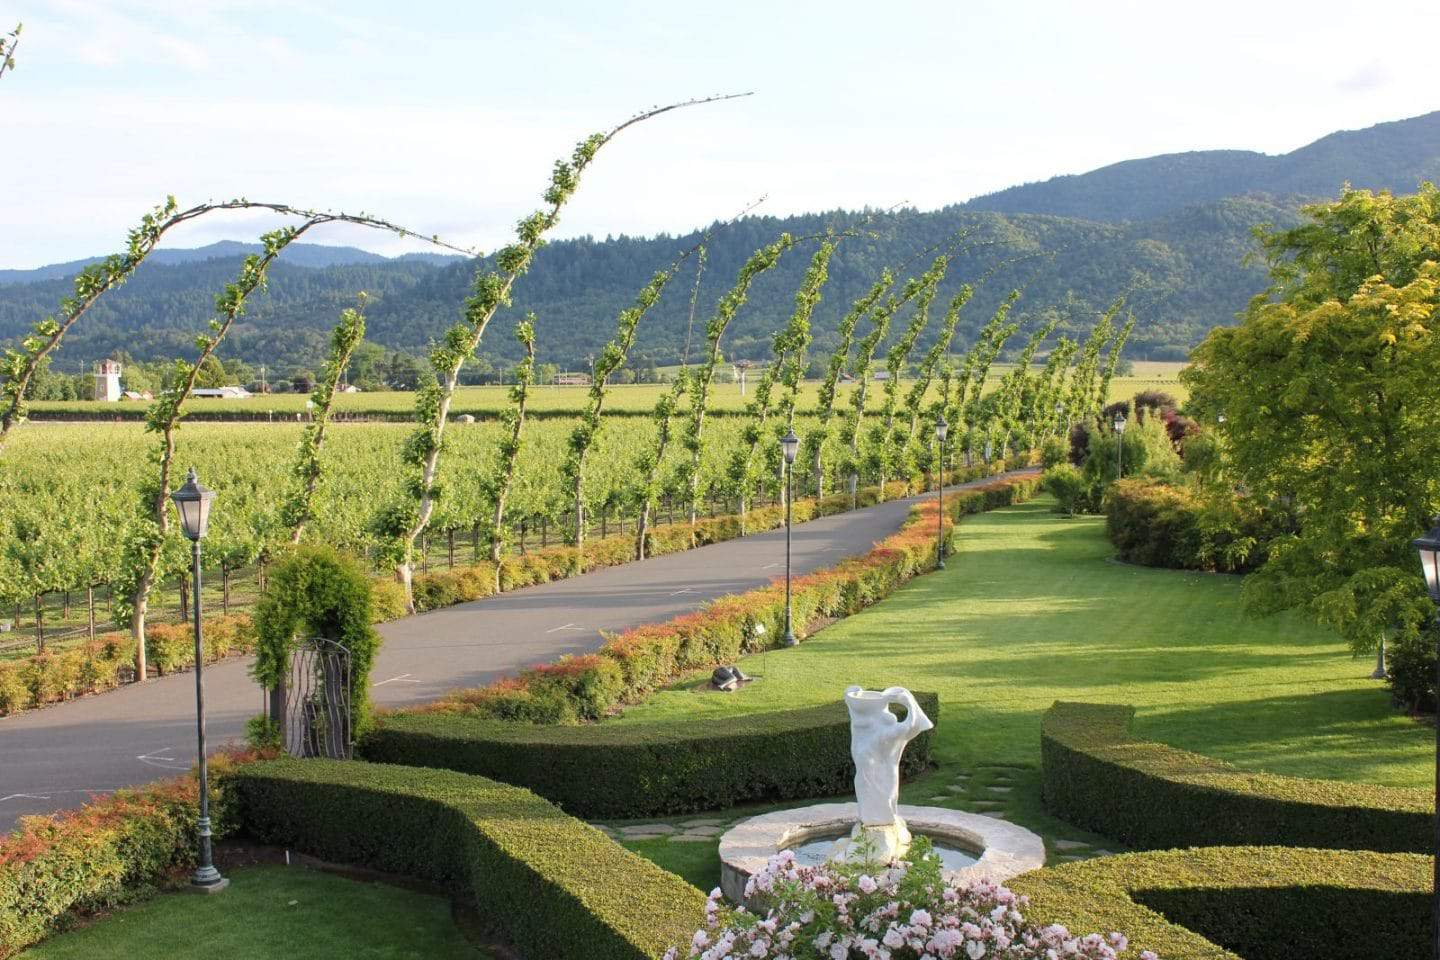 Peju province winery grounds